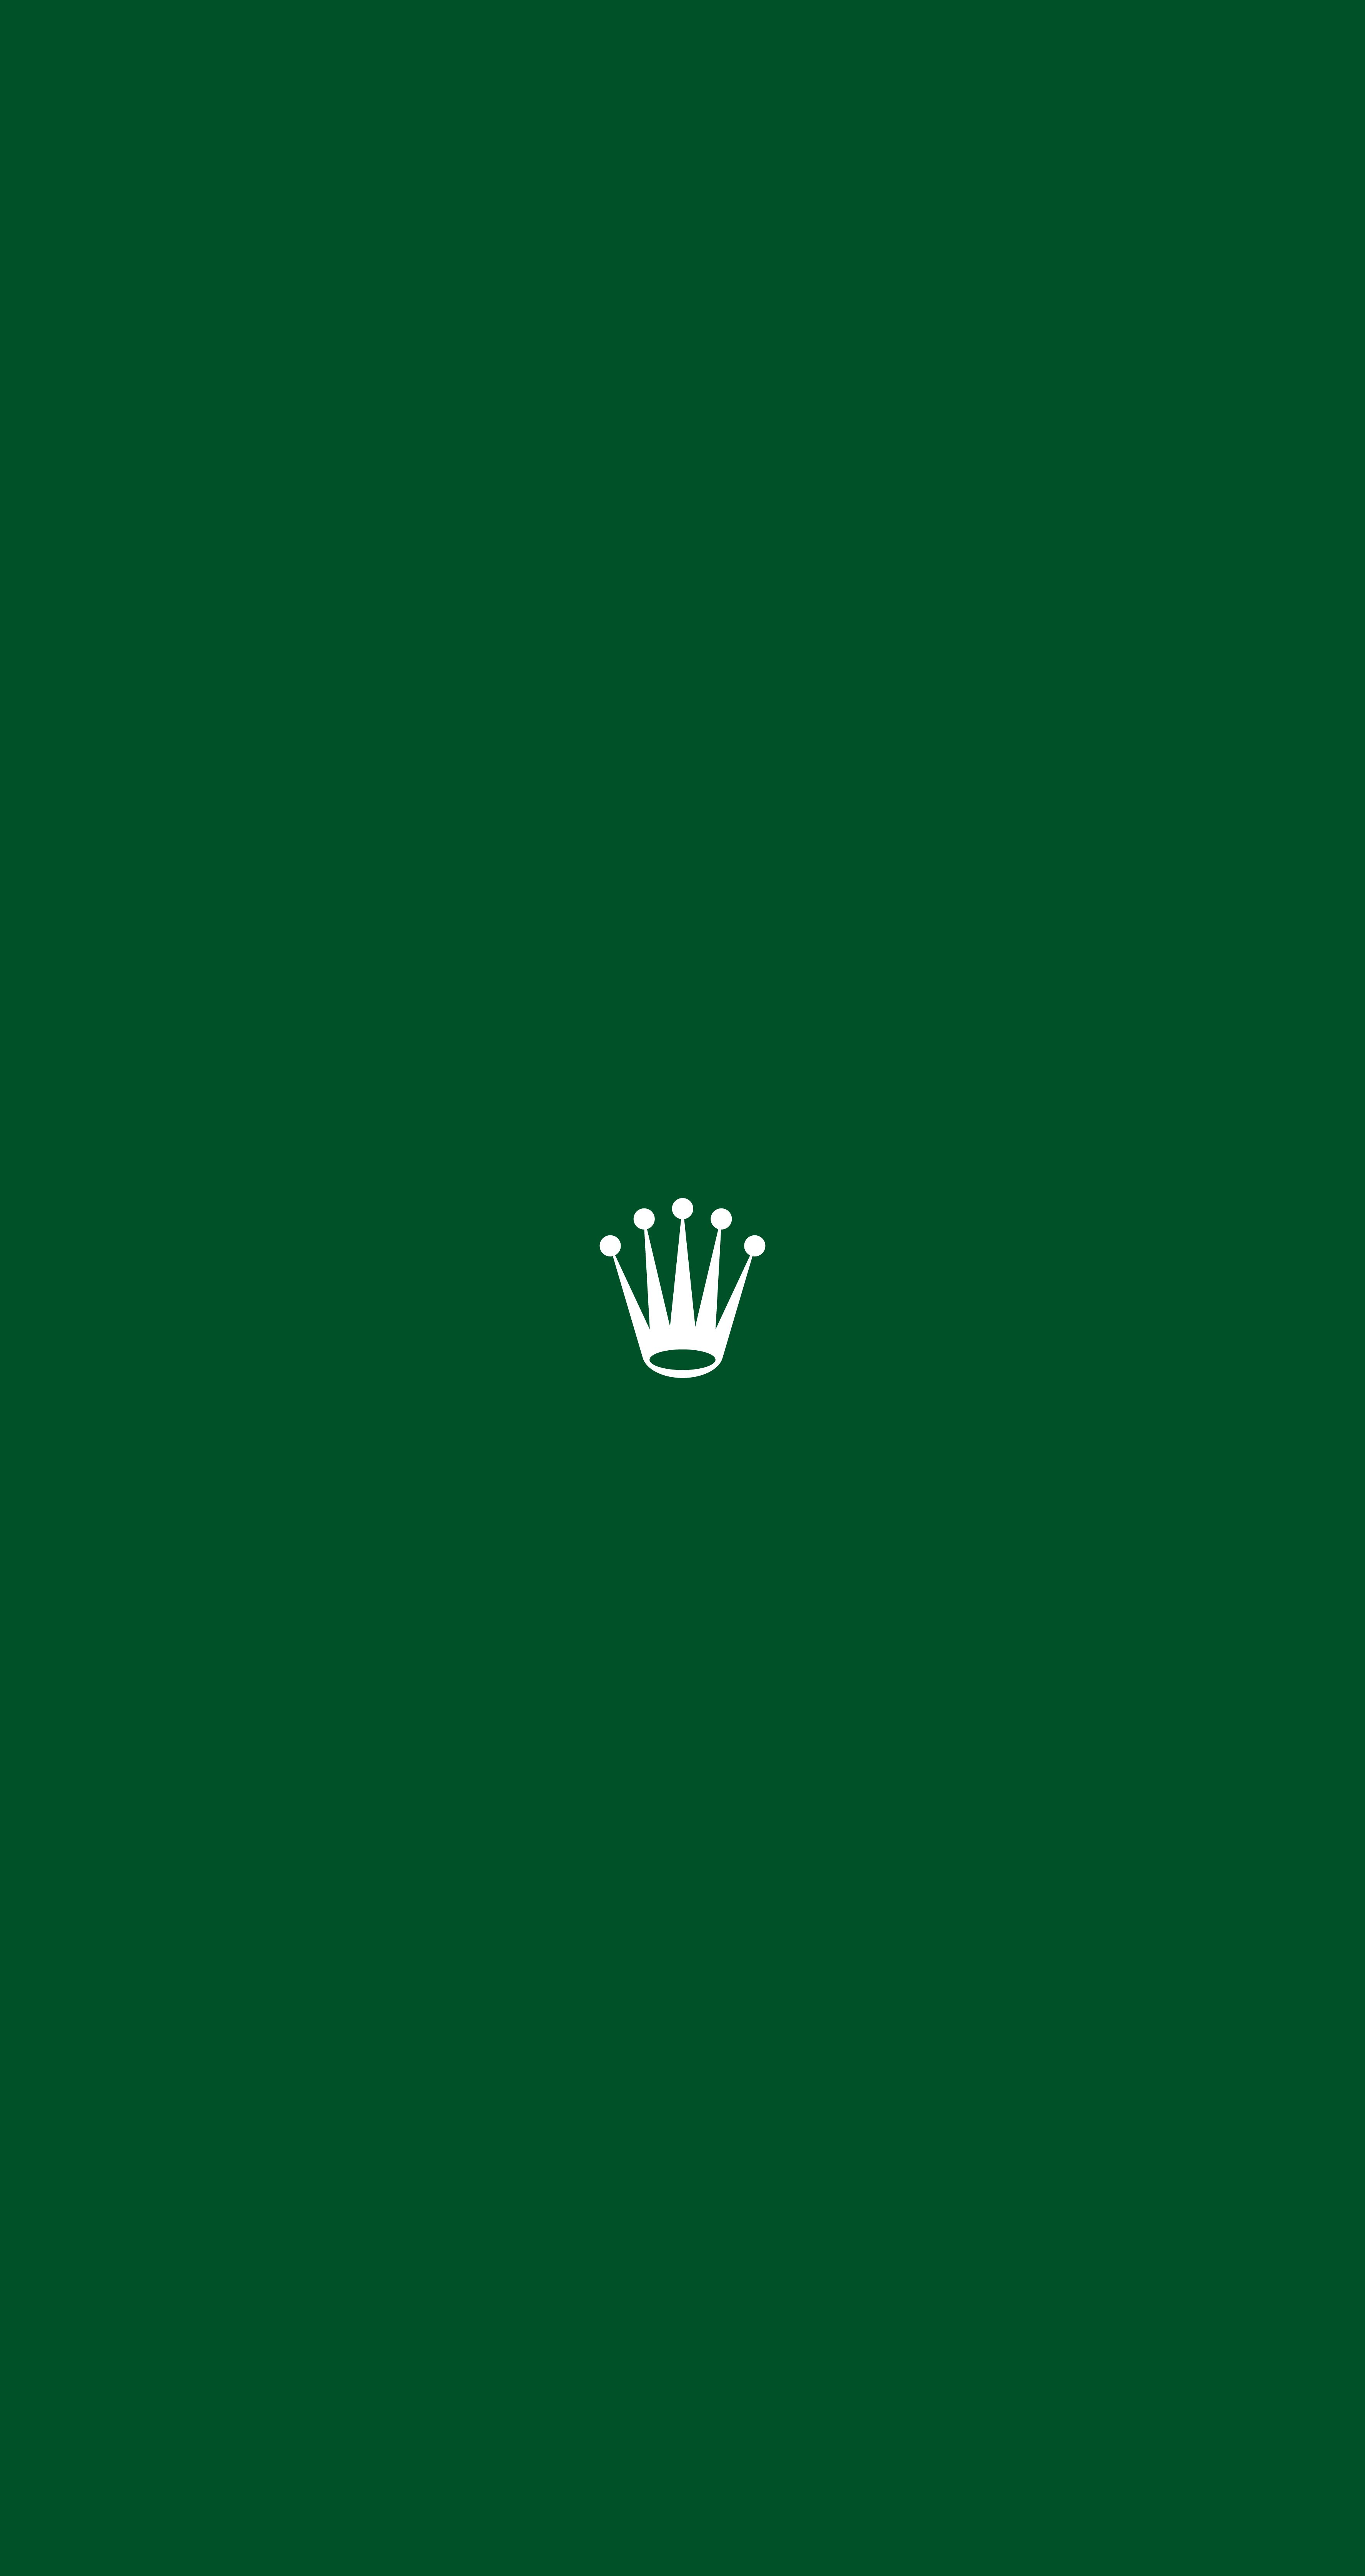 Rolex HD iPhone Wallpapers - Top Free